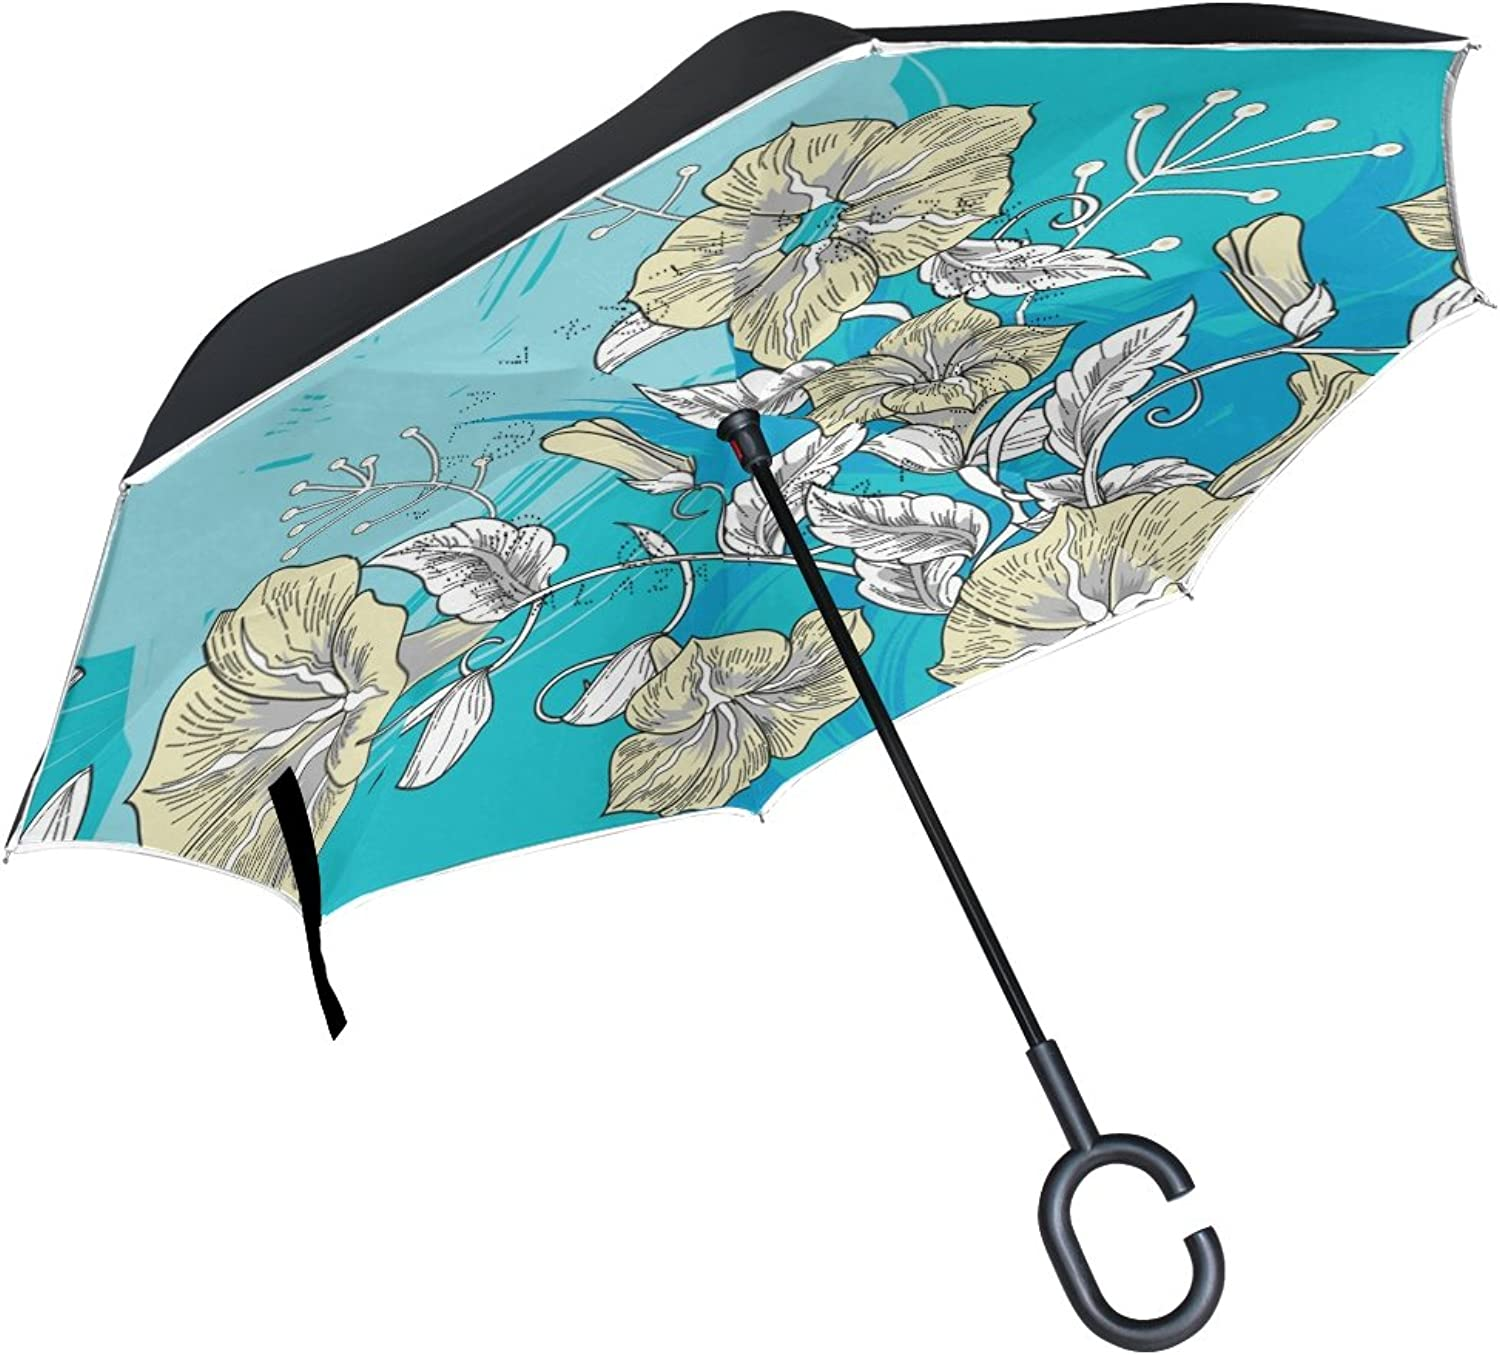 LEISISI Floral Petunia Flowers Double Layer Ingreened Umbrella Reverse Auto Open Umbrella Windproof UV Predection Upside Down Umbrella for Car Rain Outdoor Use